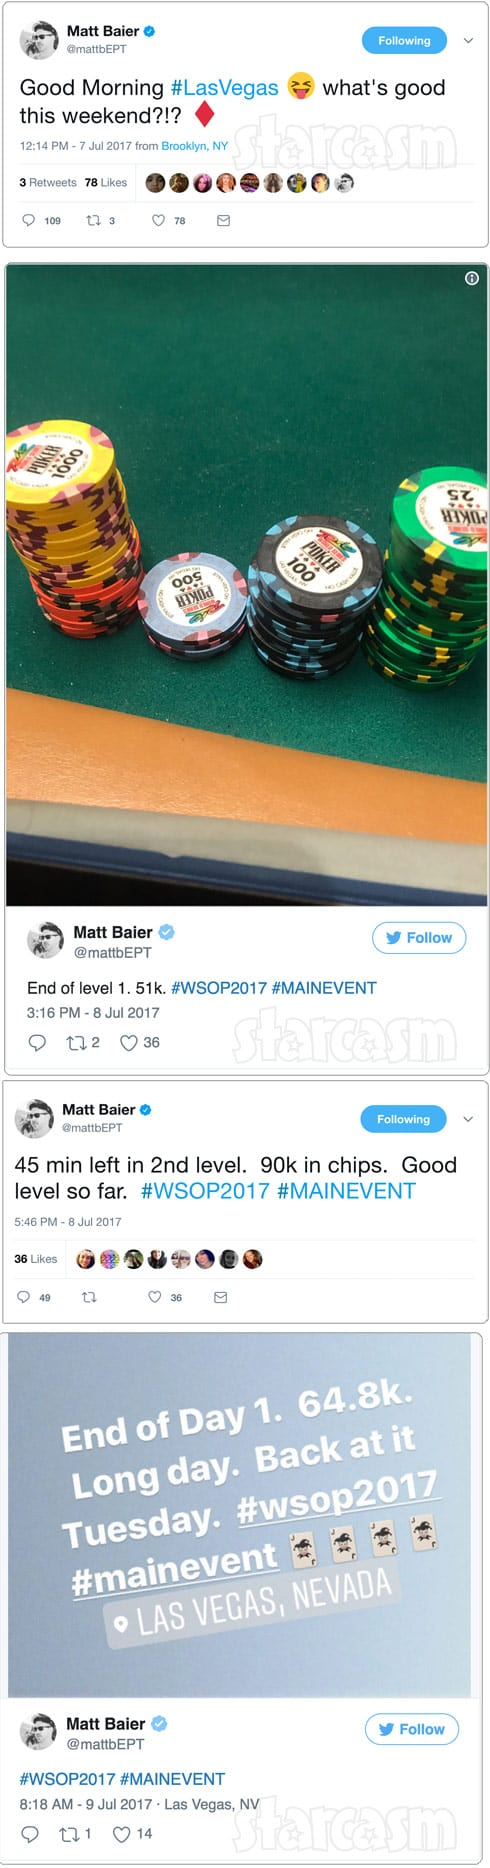 Matt Baier World Series of Poker tweets about buddy Jeff aka Jeffrey Bruno